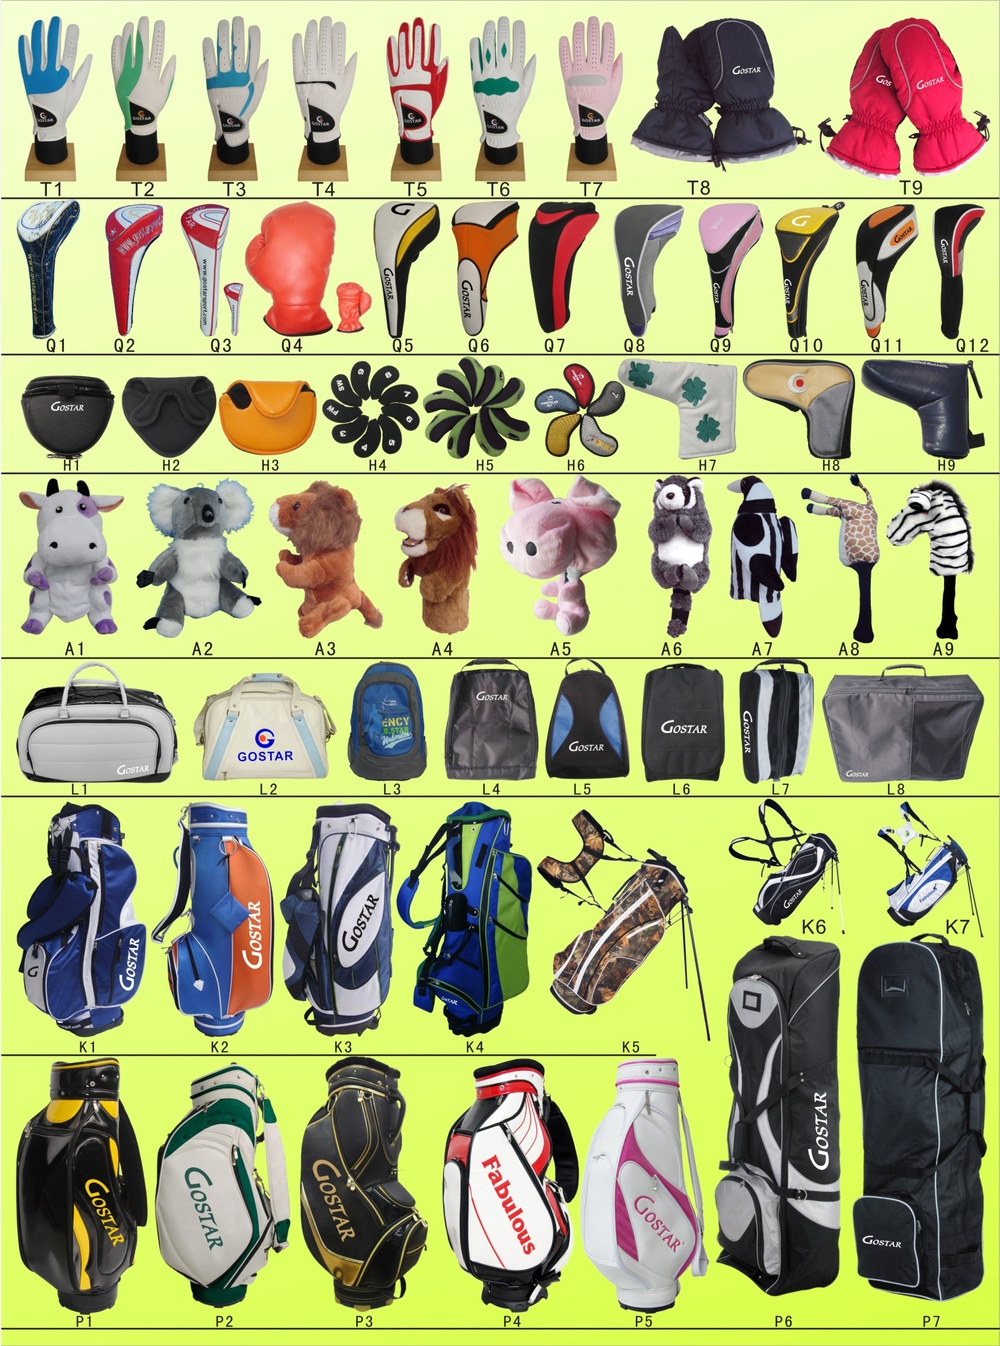 Full Colored Cabretta Leather Golf Glove